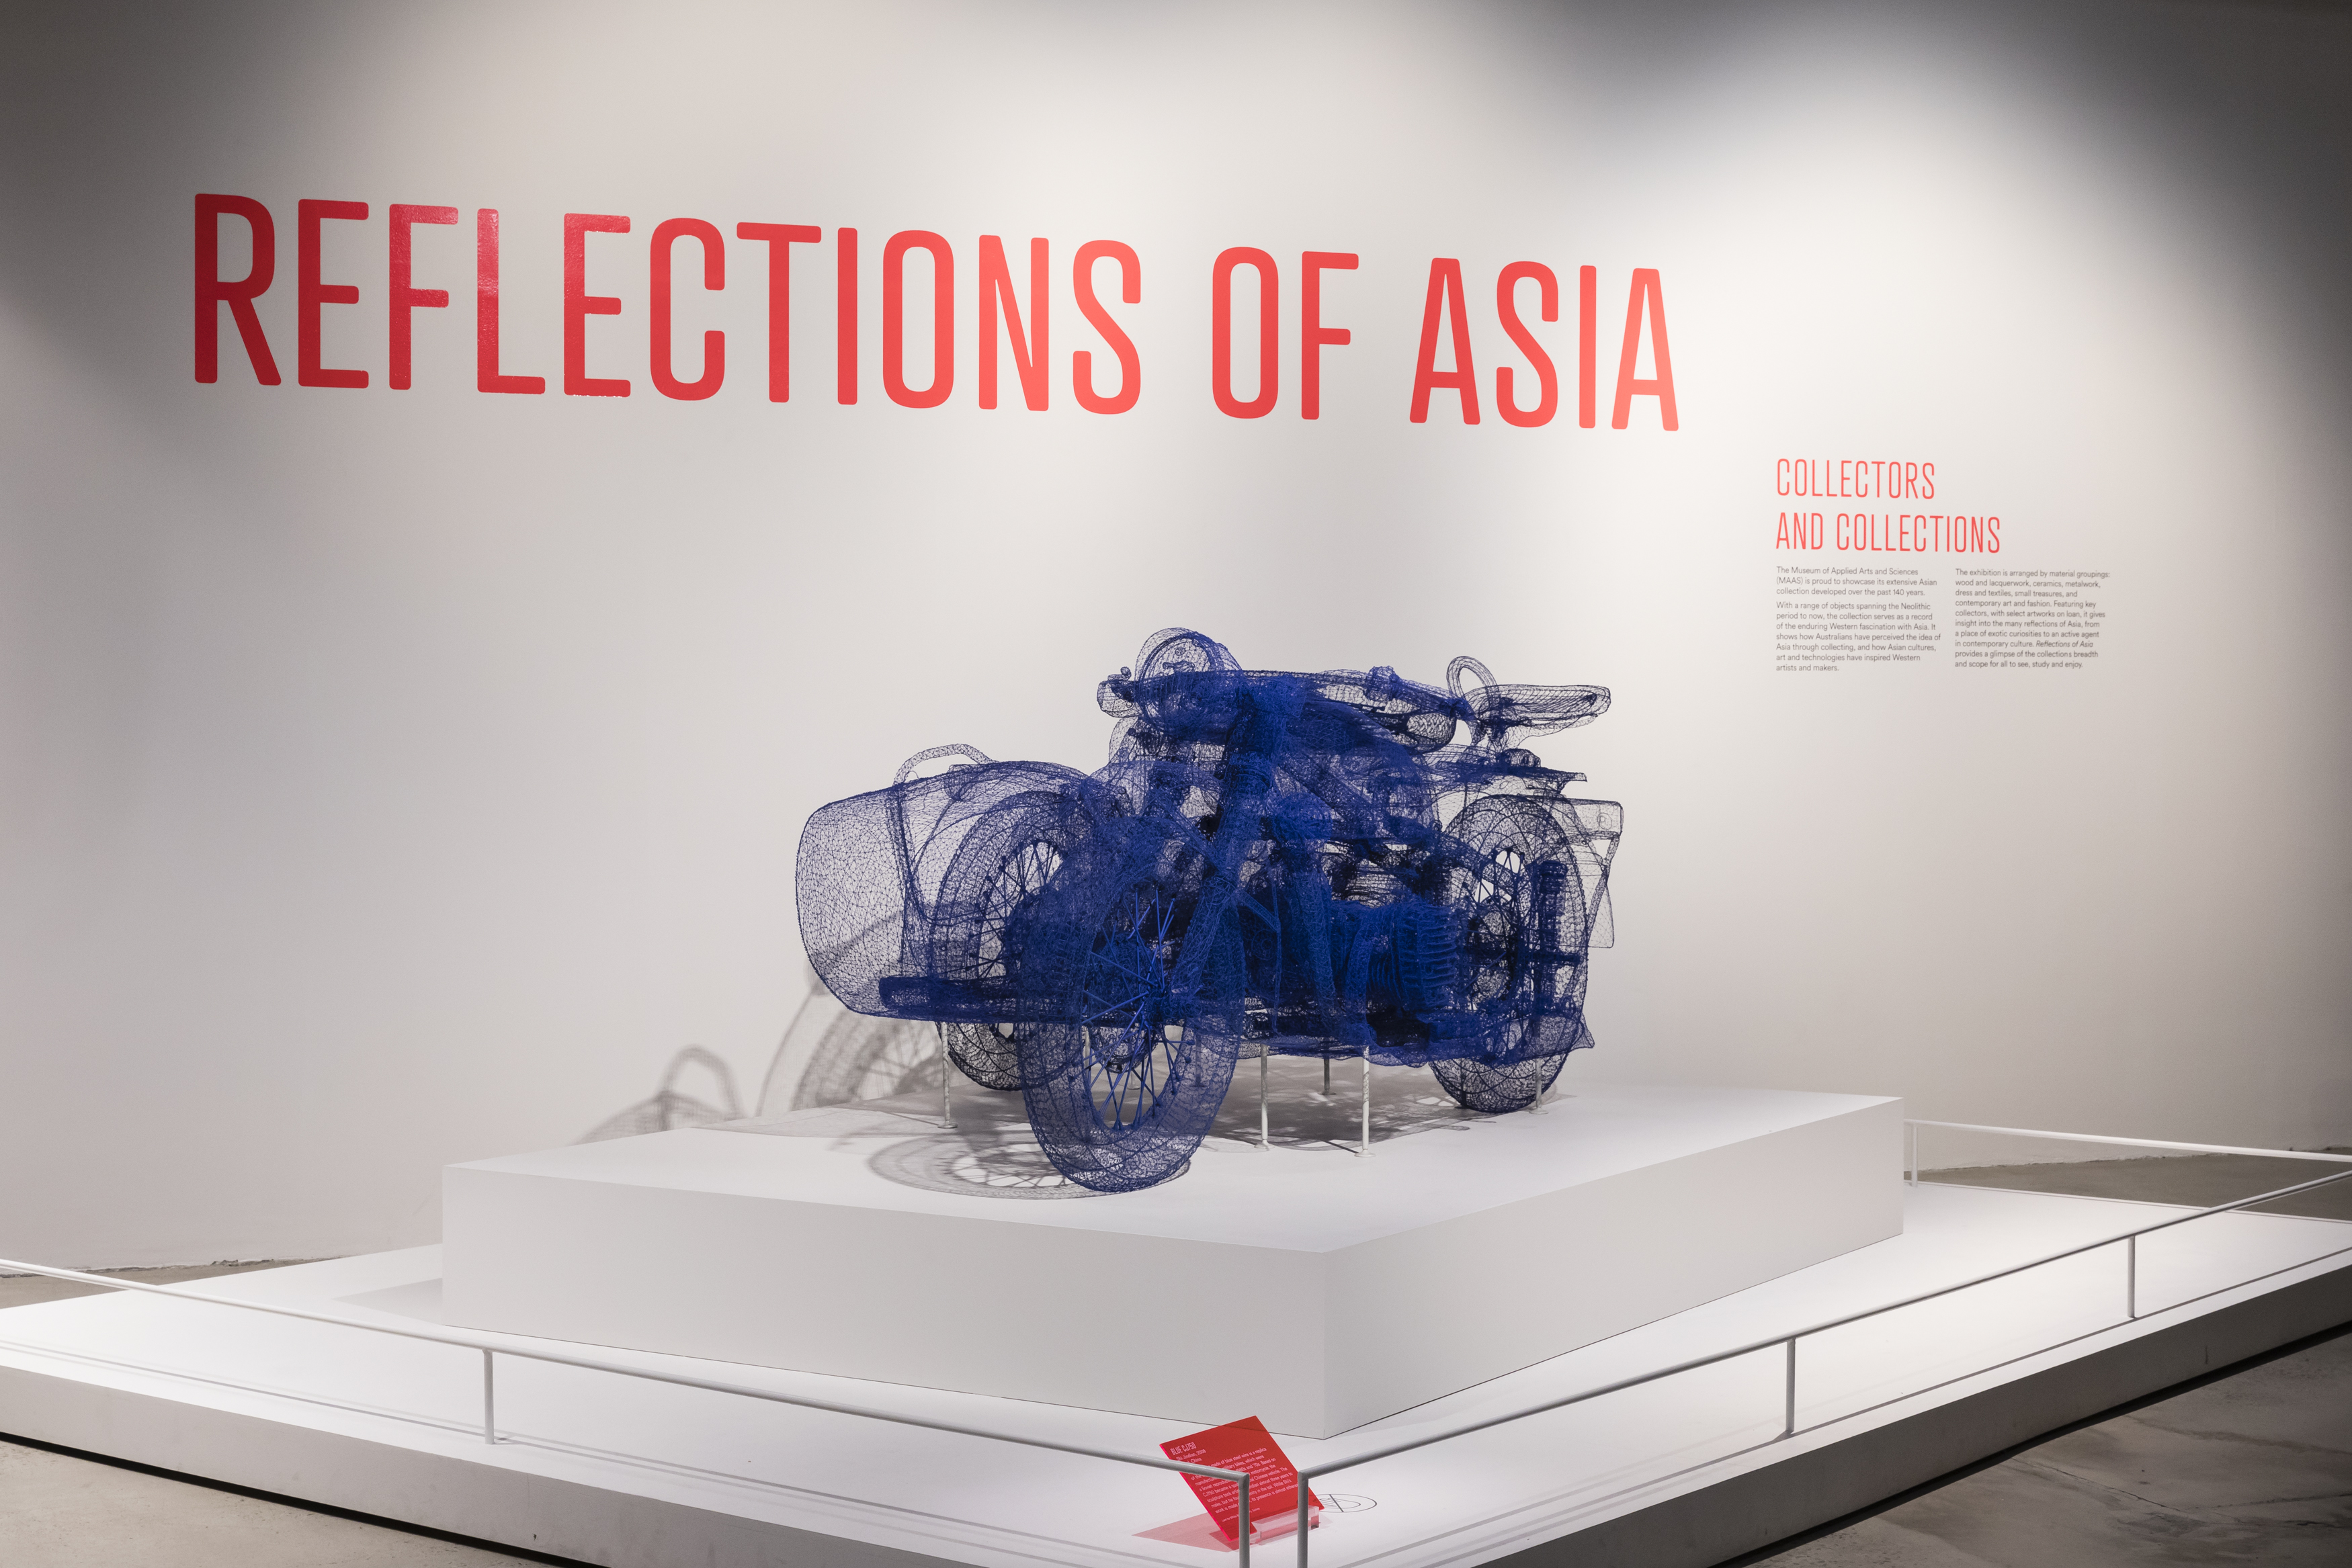 View of an exhibition title 'Reflections of Asia: Collectors and Collection' on a white wall and an art work that is a motorcycle made of blue wire.